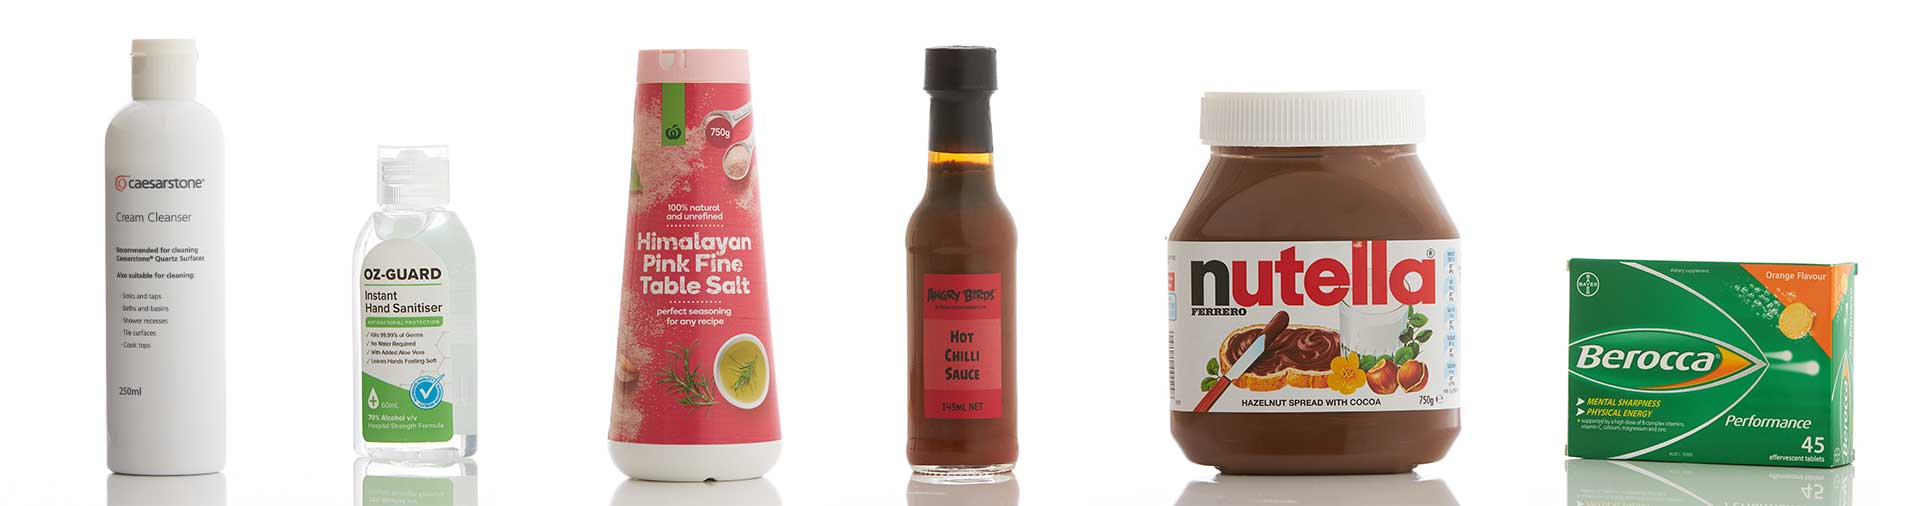 various-products-including-nutella-hand-sanitiser bottles-photographed-on-a-clean-white-background